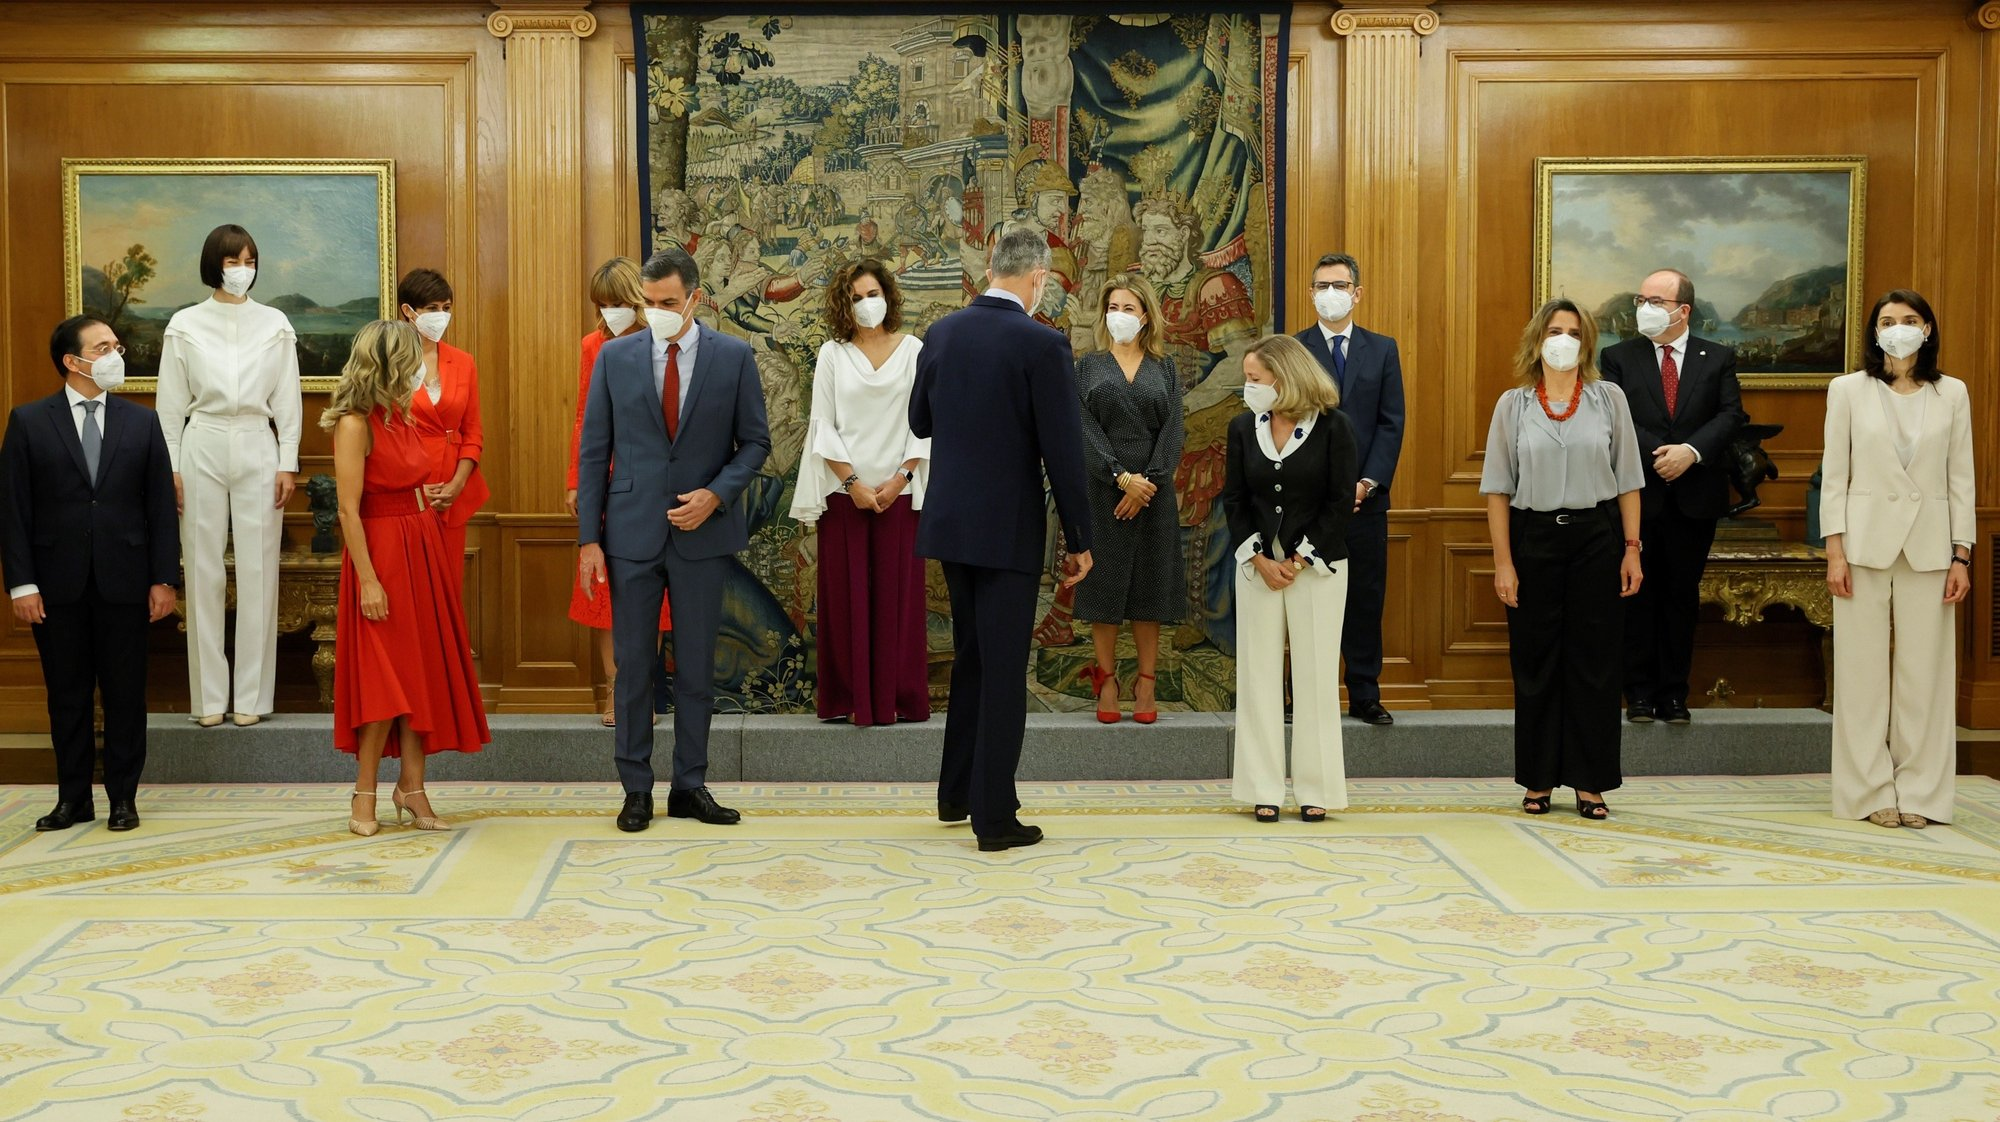 epa09339637 Spain's King Felipe VI (C, front) and Spanish Prime Minister Pedro Sanchez (3L, front) prepare to pose for a family photo with the new members of Spanish Cabinet during the swearing-in ceremony at La Zarzuela Palace, in Madrid, Spain, 12 July 2021. Spanish Prime Minister Pedro Sanchez announced a deep change in his Cabinet aimed to boost economic recovery after the impact of COVID-19 pandemic.  EPA/BALLESTEROS / POOL